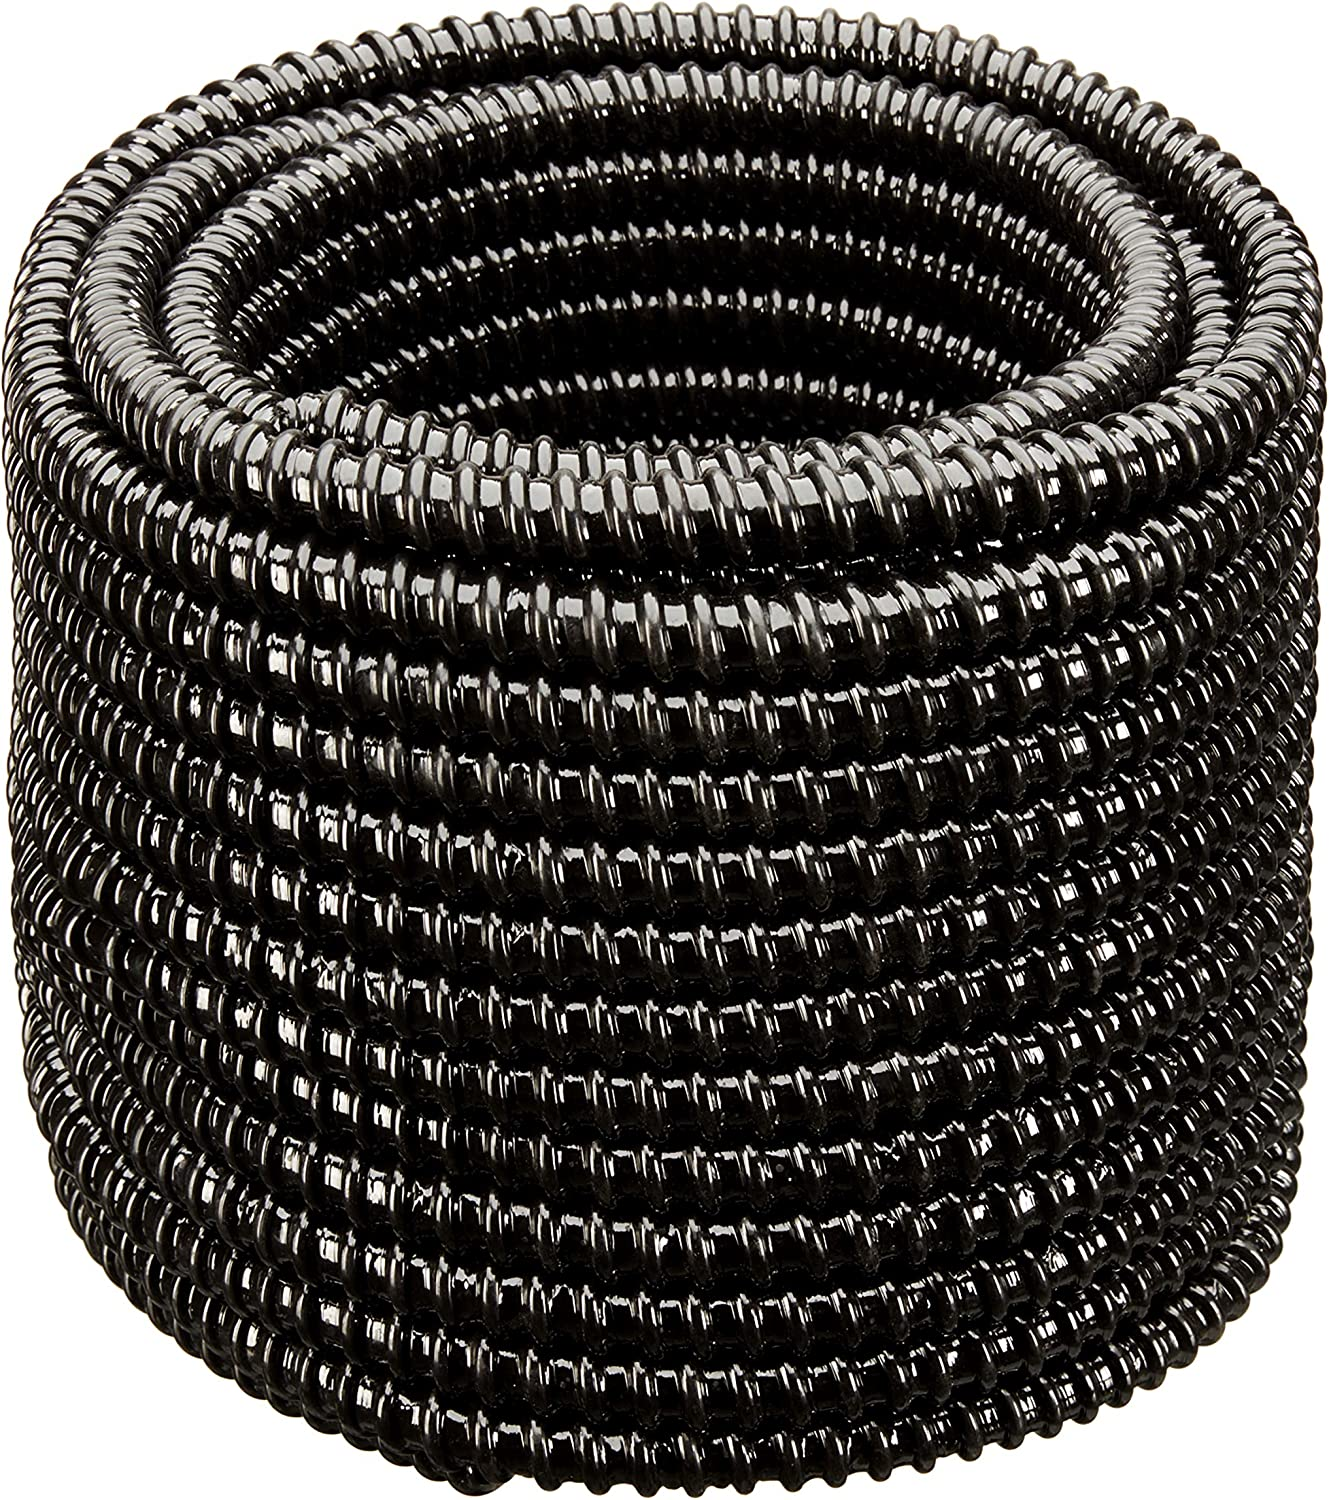 Hydromaxx Flexible Corrugated Pvc Non Split Tubing And Convoluted Wire Loom Uv Stabilized Rated For Outdoor Use 2 Dia X 25 Ft Black Home Improvement Amazon Com